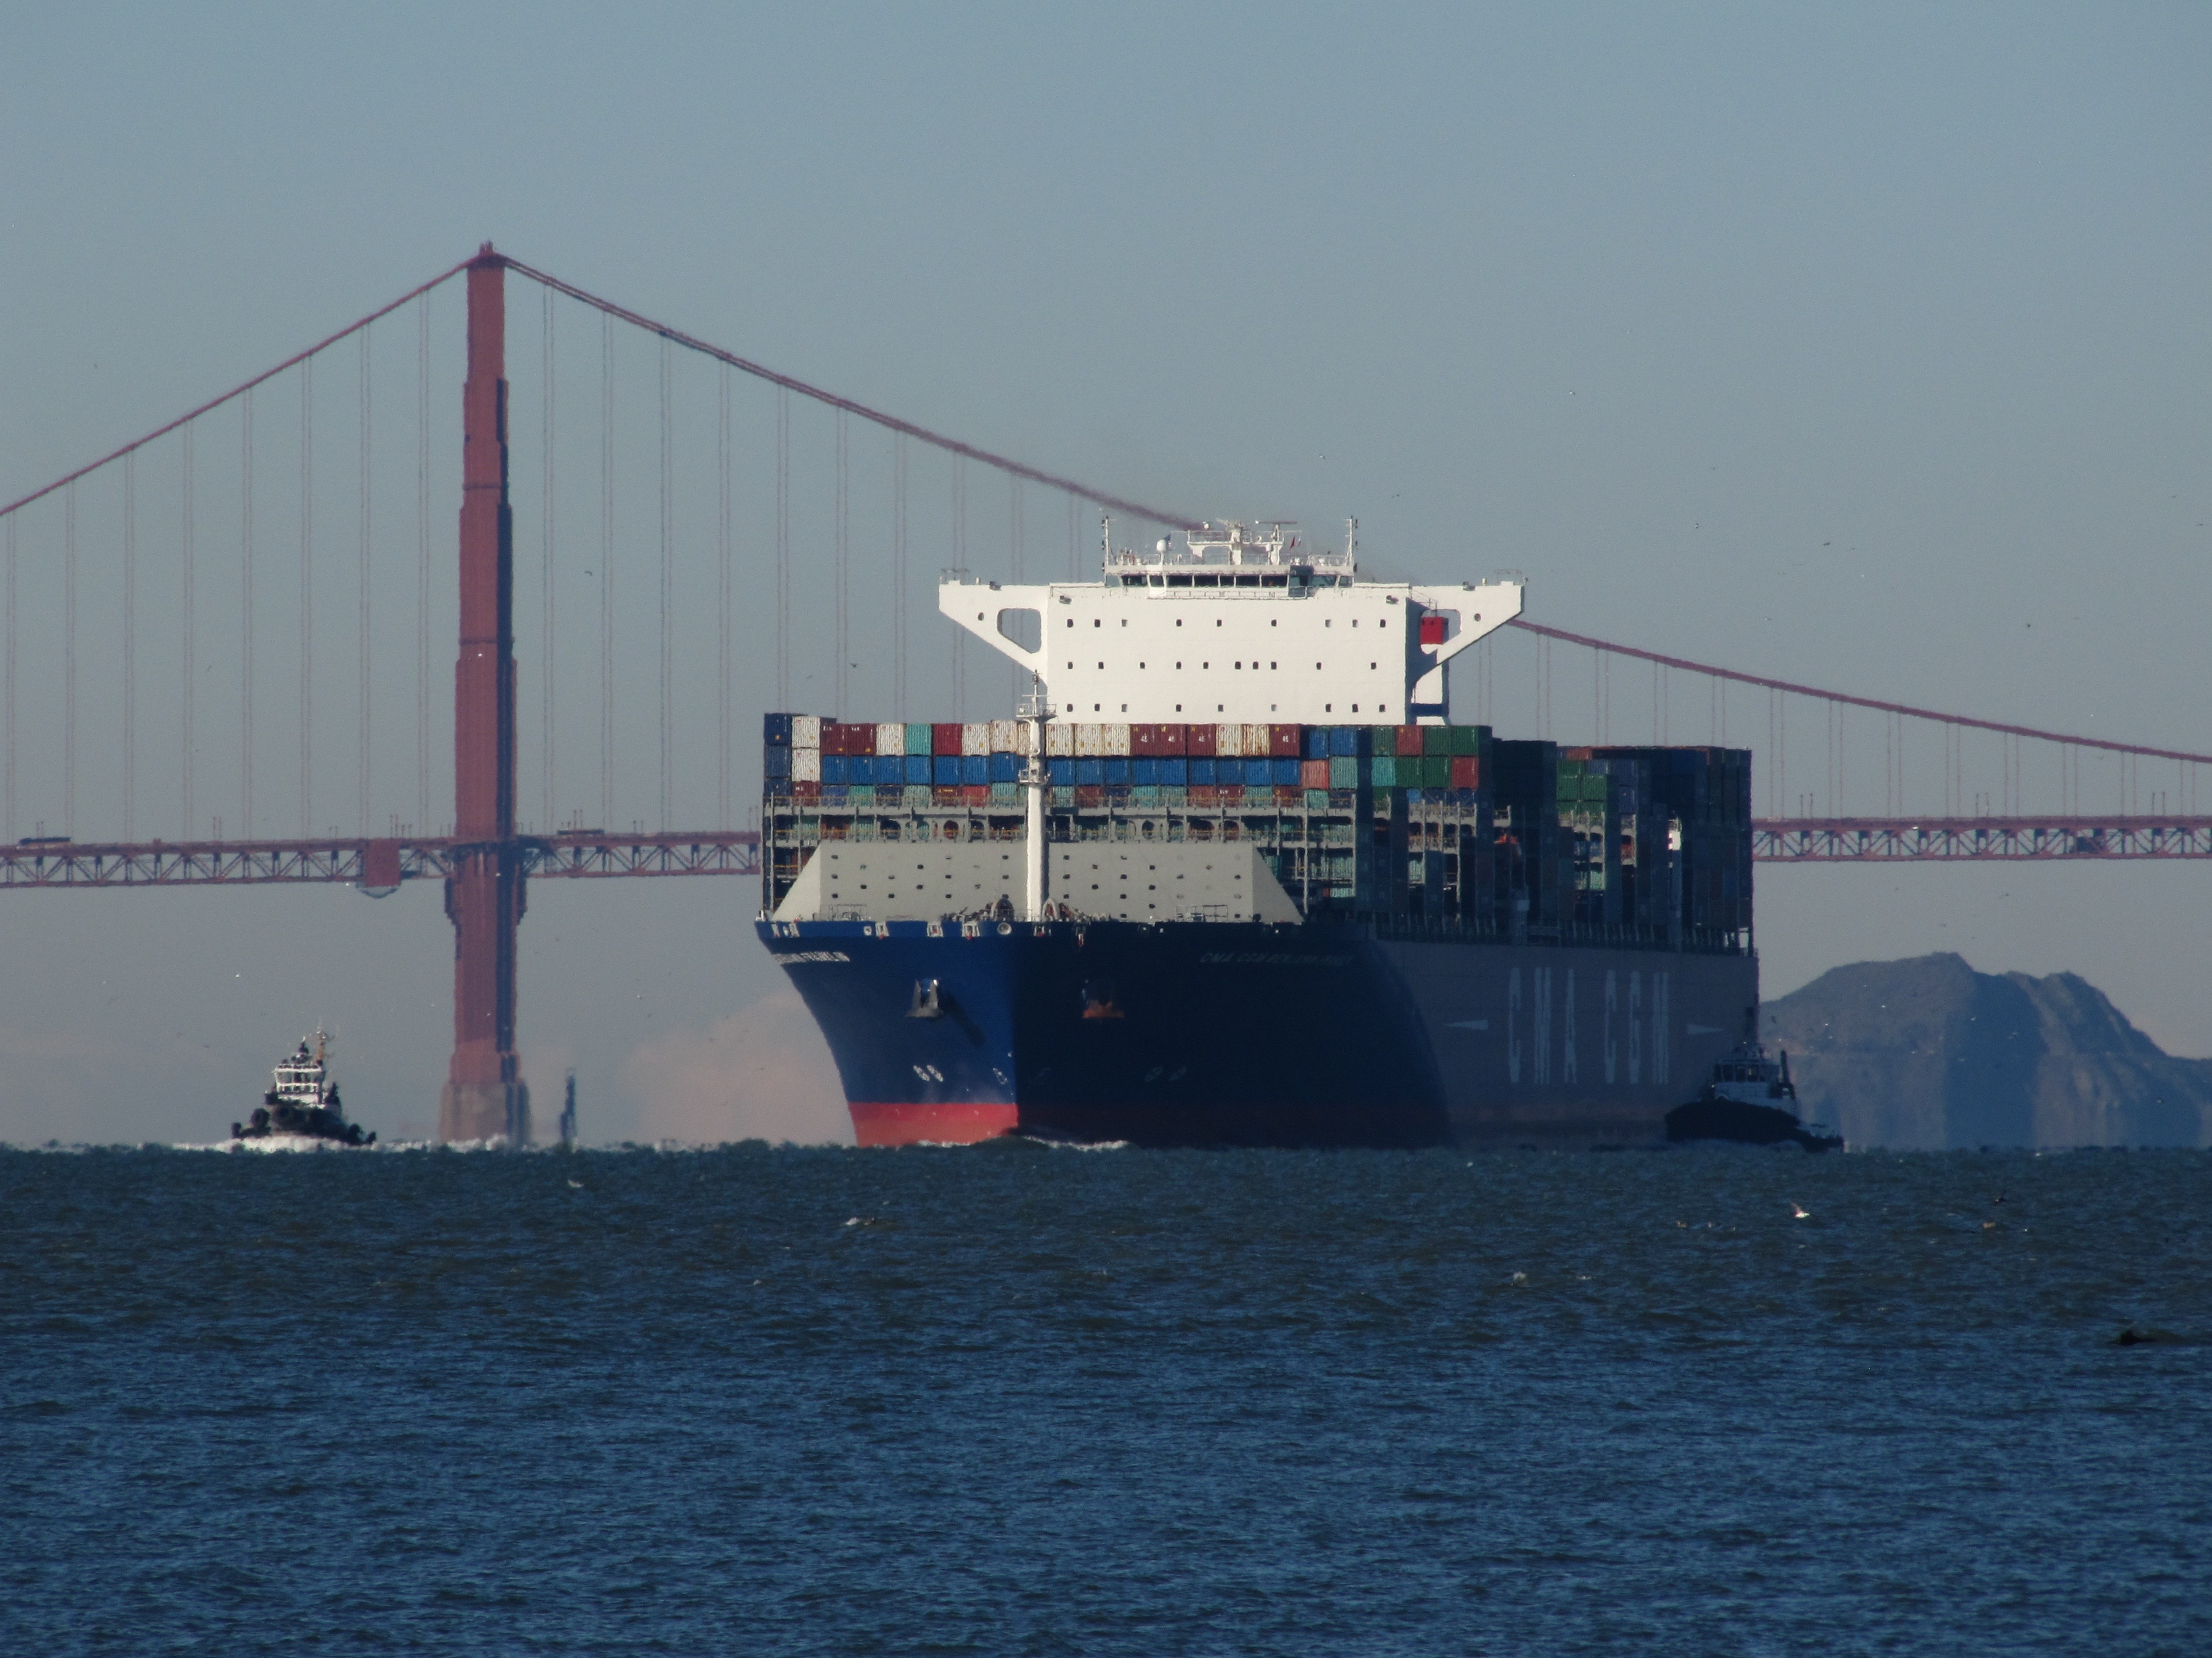 The Ultra-Large Container Ship Benjamin Franklin enters San Francisco Bay on December 31, 2015, the largest cargo ship ever to pass under the Golden Gate Bridge.